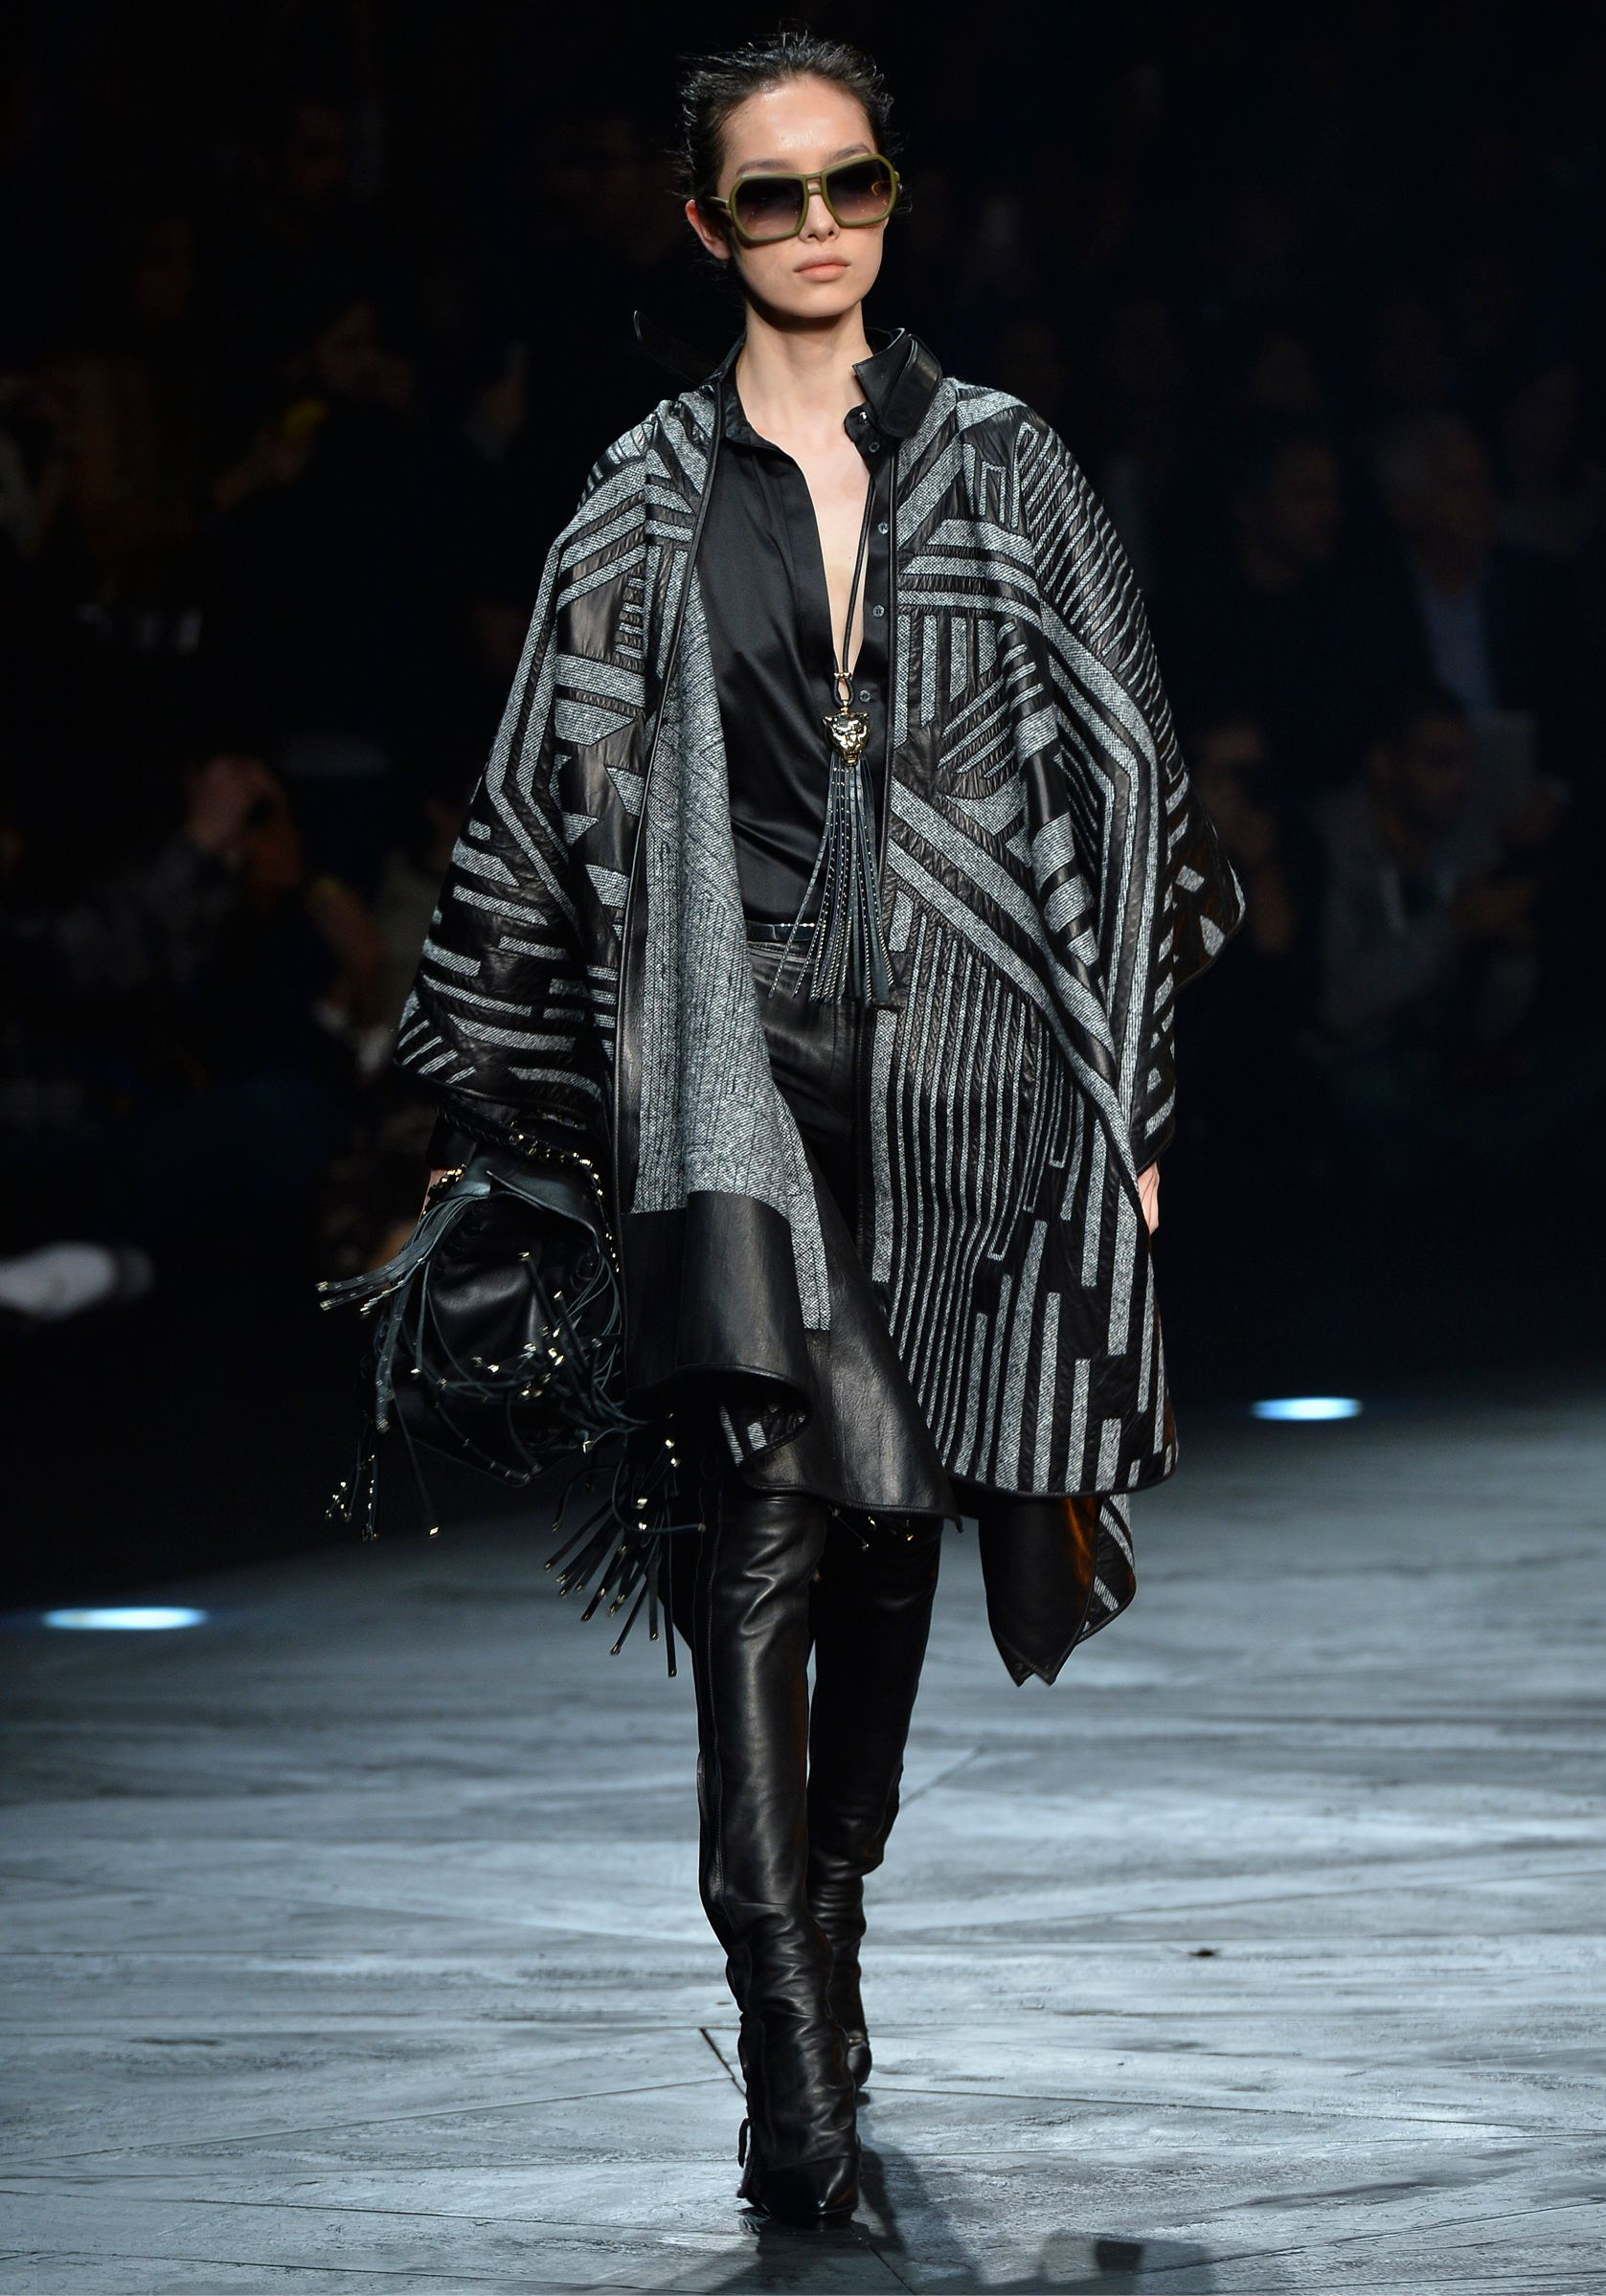 #RobertoCavalli FW14 runway show - The equestrian-chic atmosphere is highlighted by leather pants, military shapes and enveloping blanket coats.